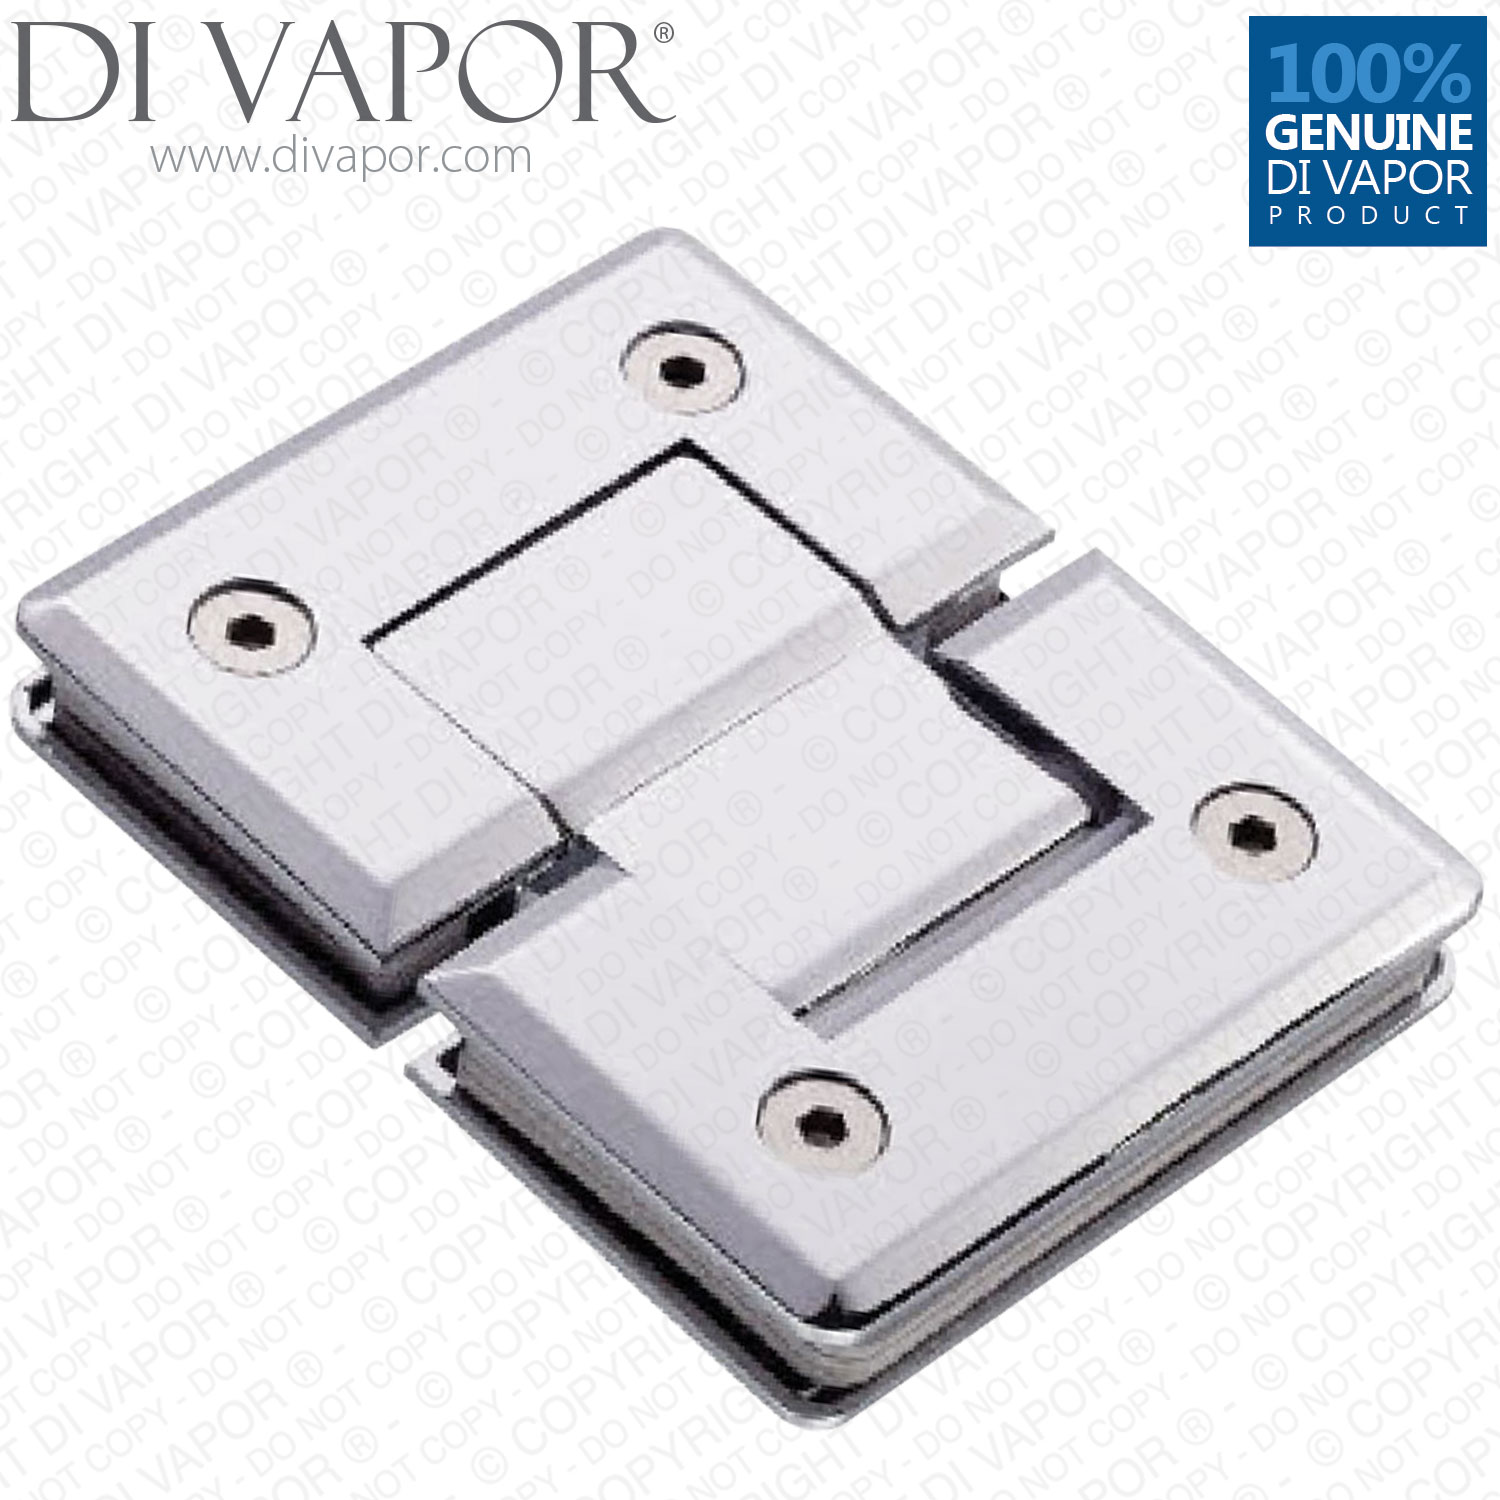 Glass Shower Door Hinges : Di vapor r degree glass to shower door hinge